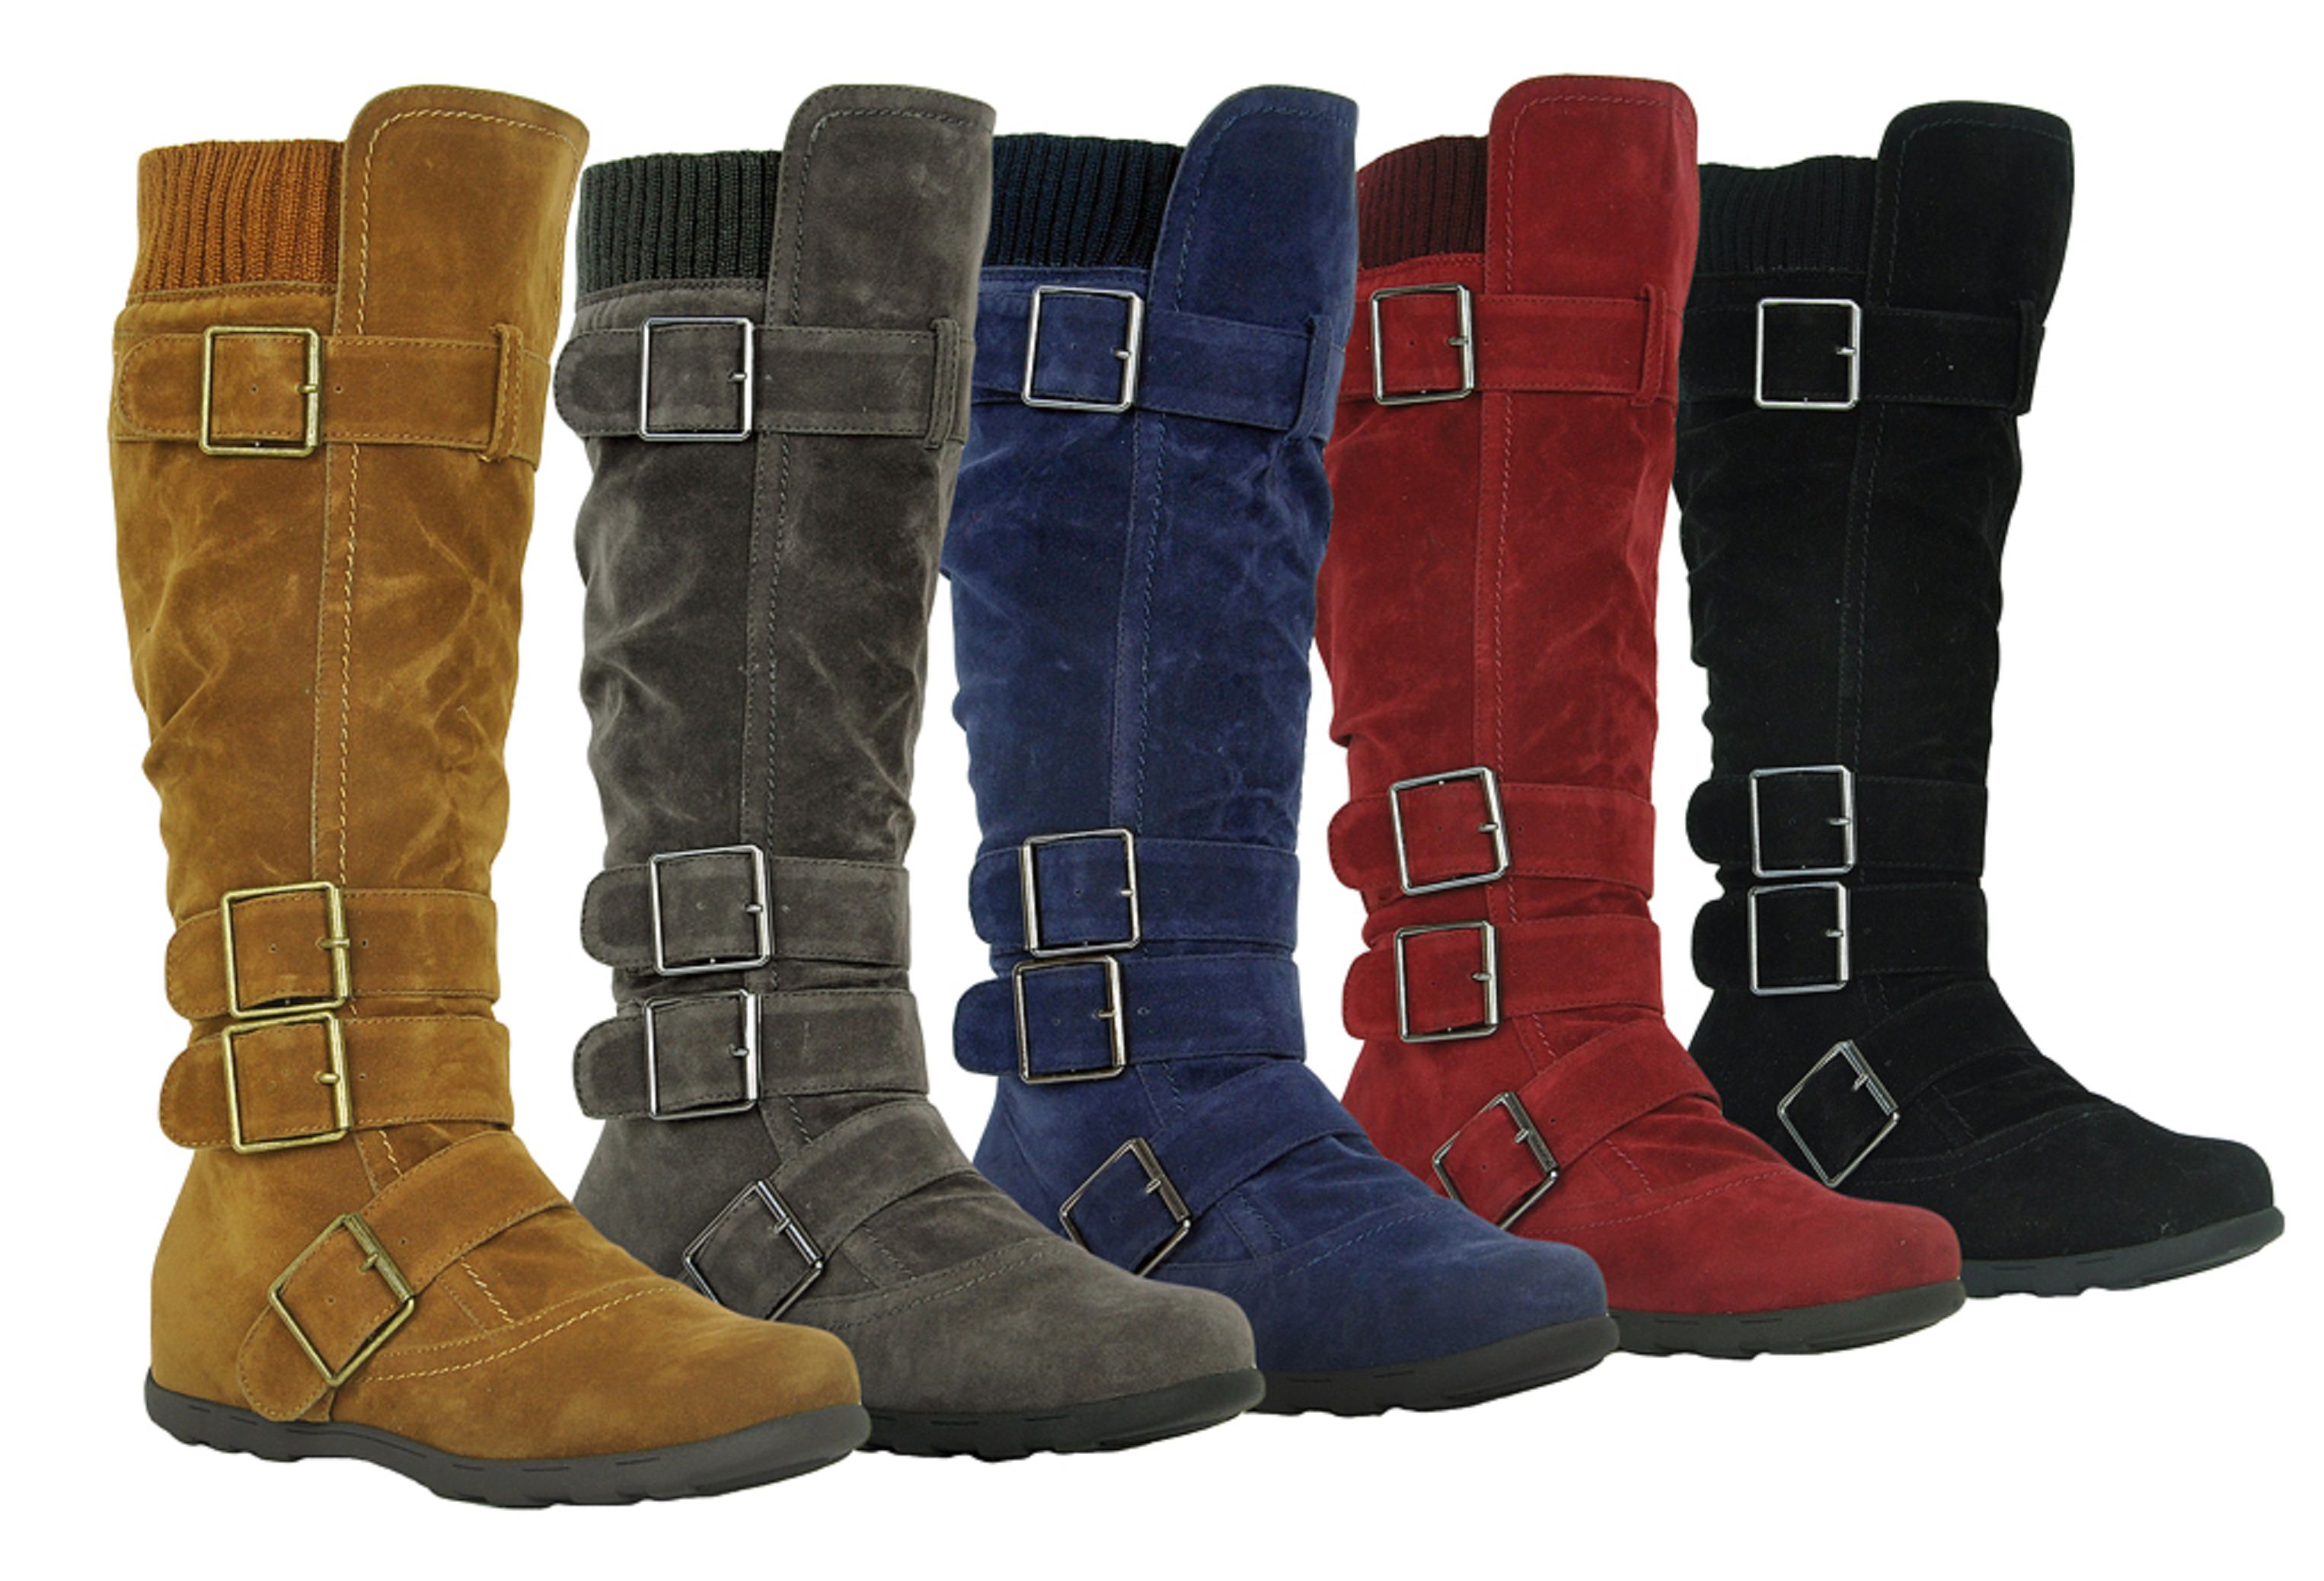 Women's Knee High Mid Calf Boots Ruched Suede (Elma-02, Slouch Knitted Calf Buckles (Elma-02, Suede Olive 7) a5b6ea